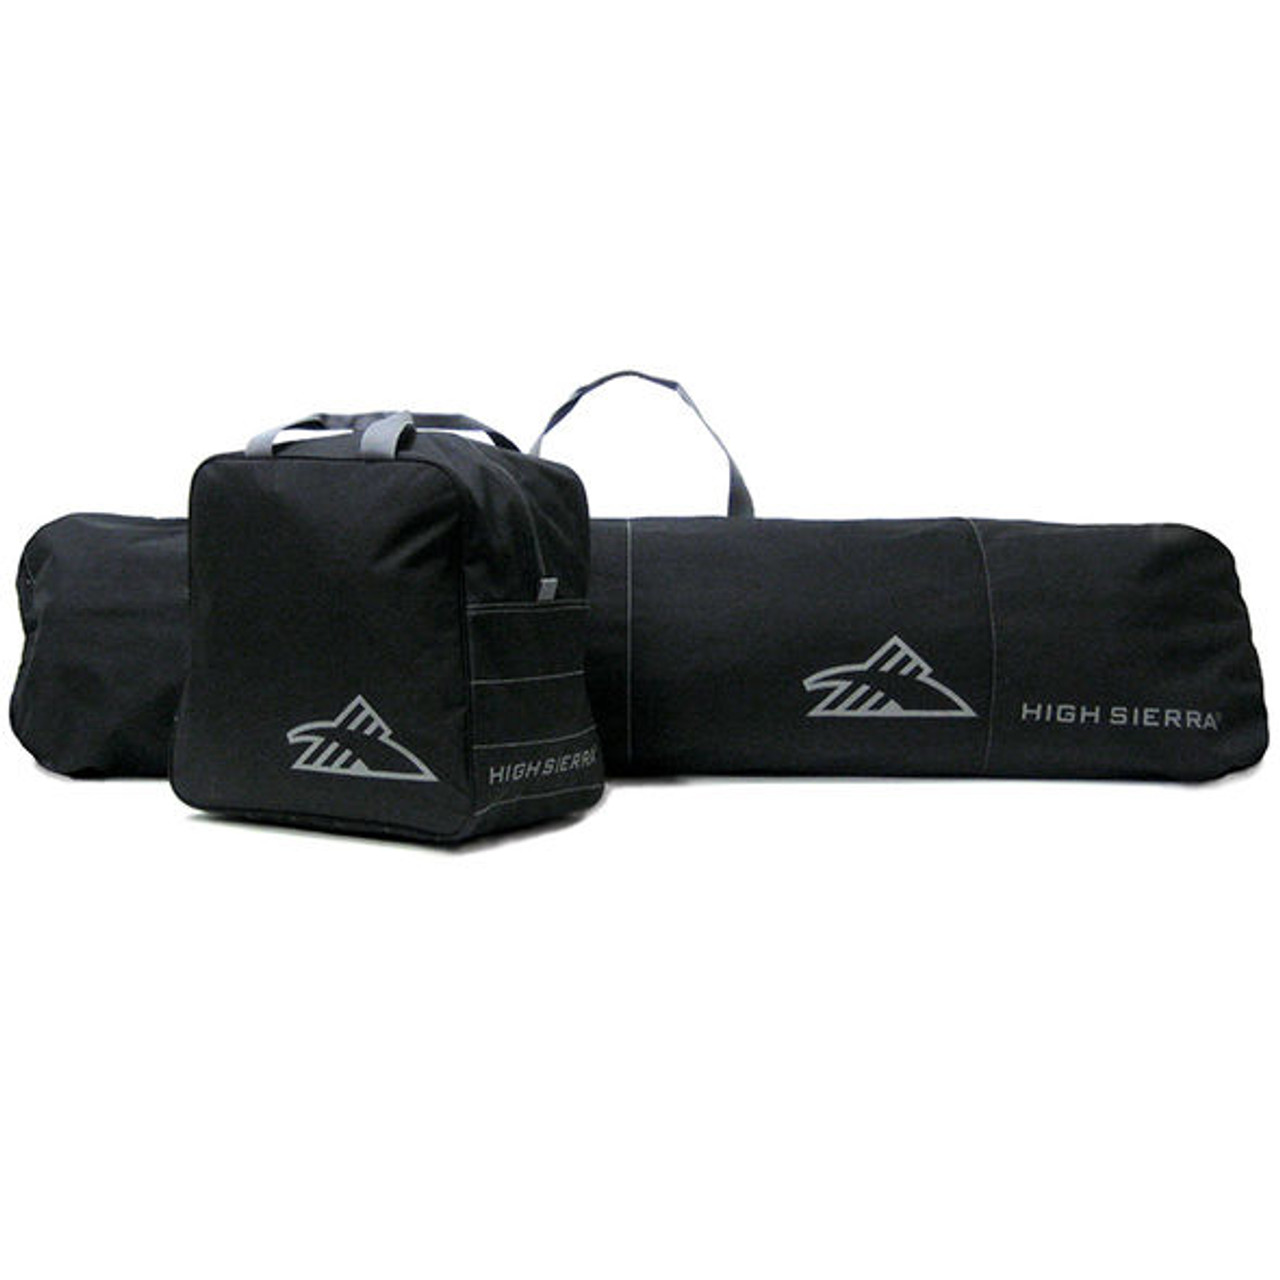 Snowboard Bag and Boot Bag Combo